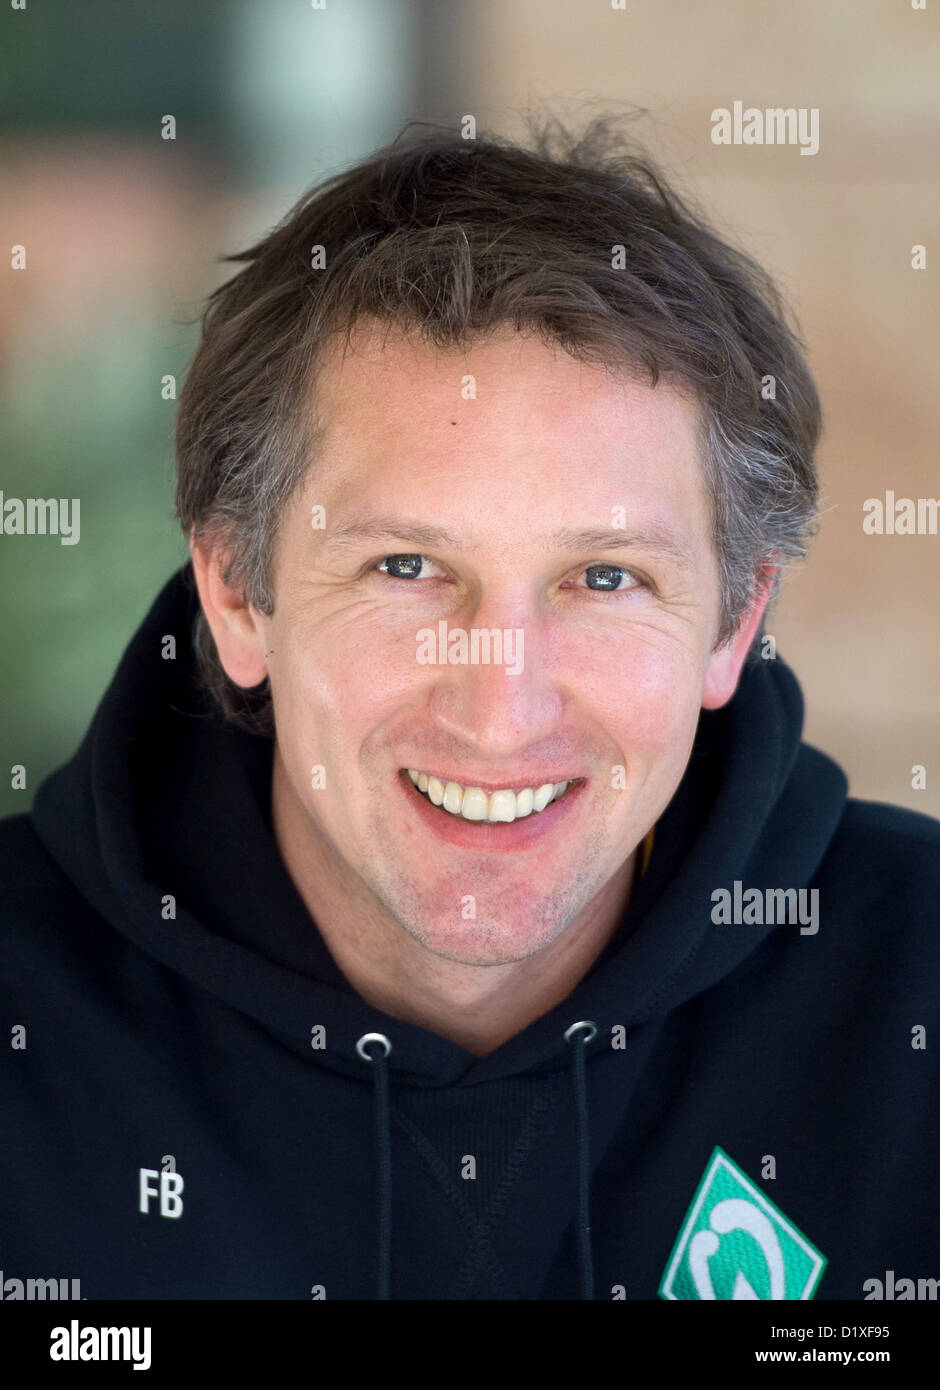 Werder Bremen's Scouting and Professional Soccer Director Frank Baumann smiles at a press conference during - Stock Image